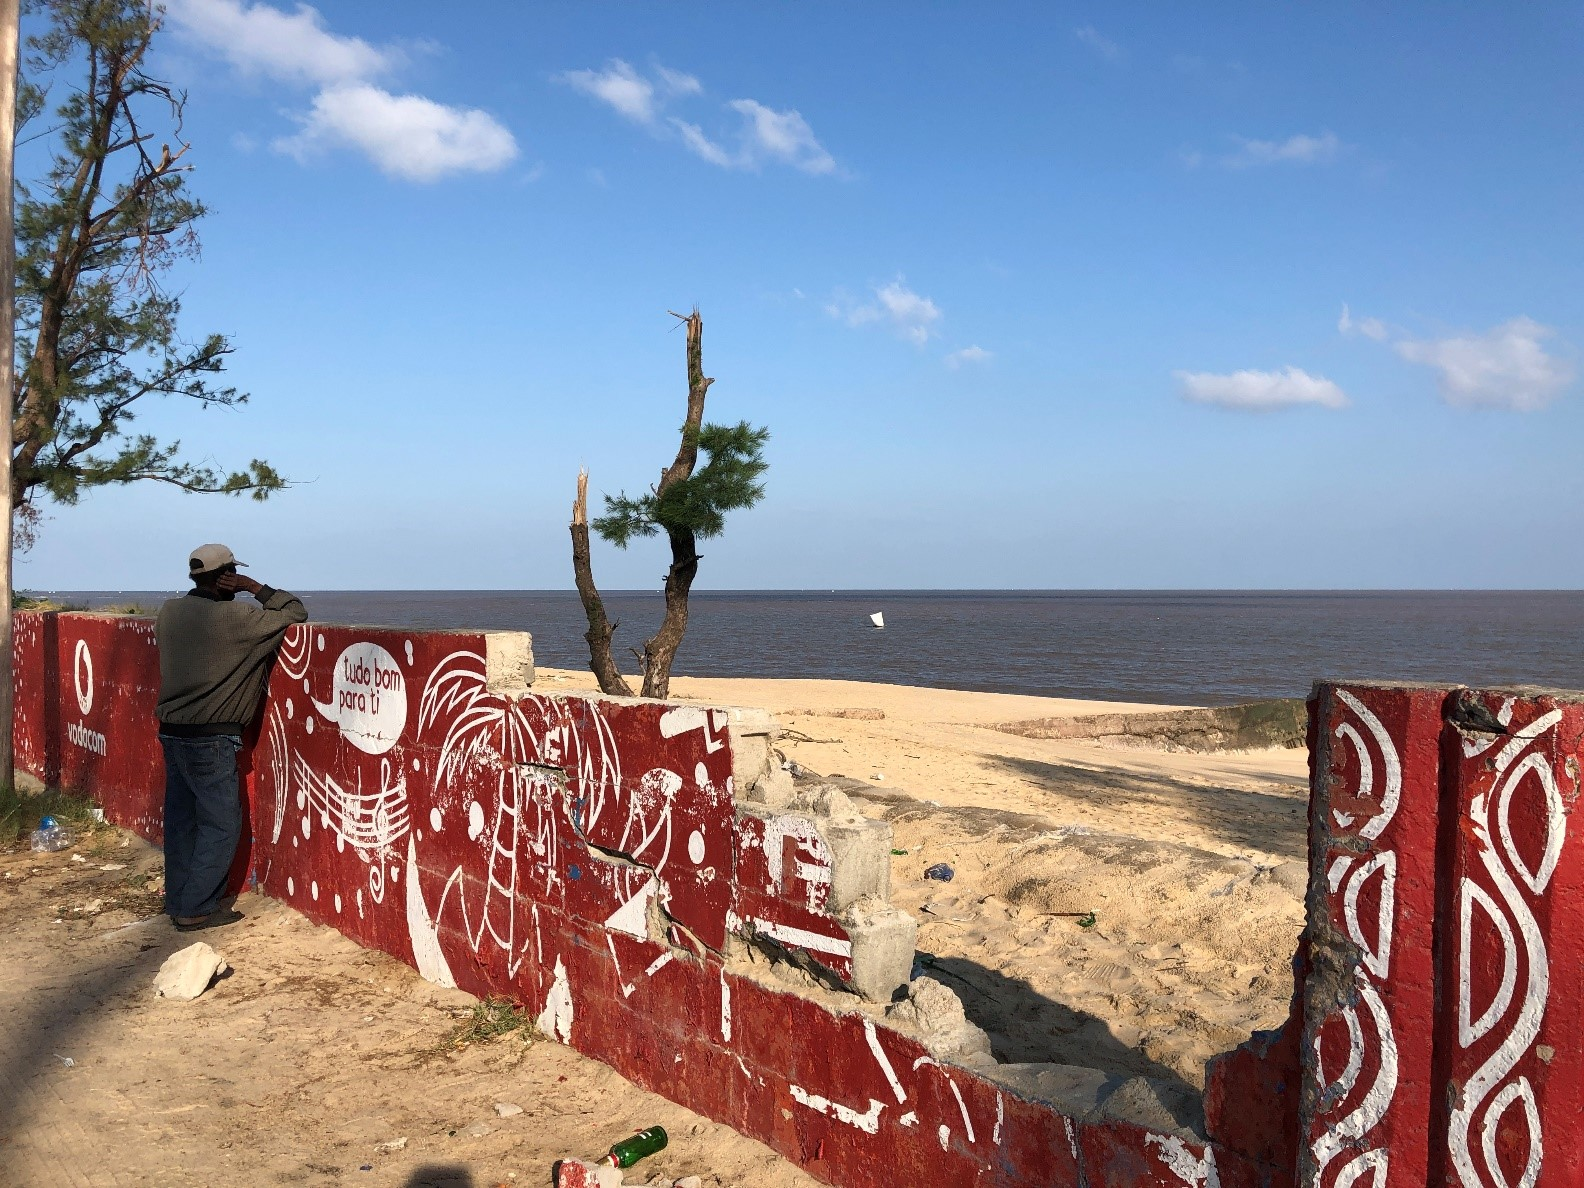 A man looks out at a damaged beach in Beira, Mozambique. A city of more than half a million people and the capital of Mozambique's Sofala Province, Beira was in the direct path of Cyclone Idai.